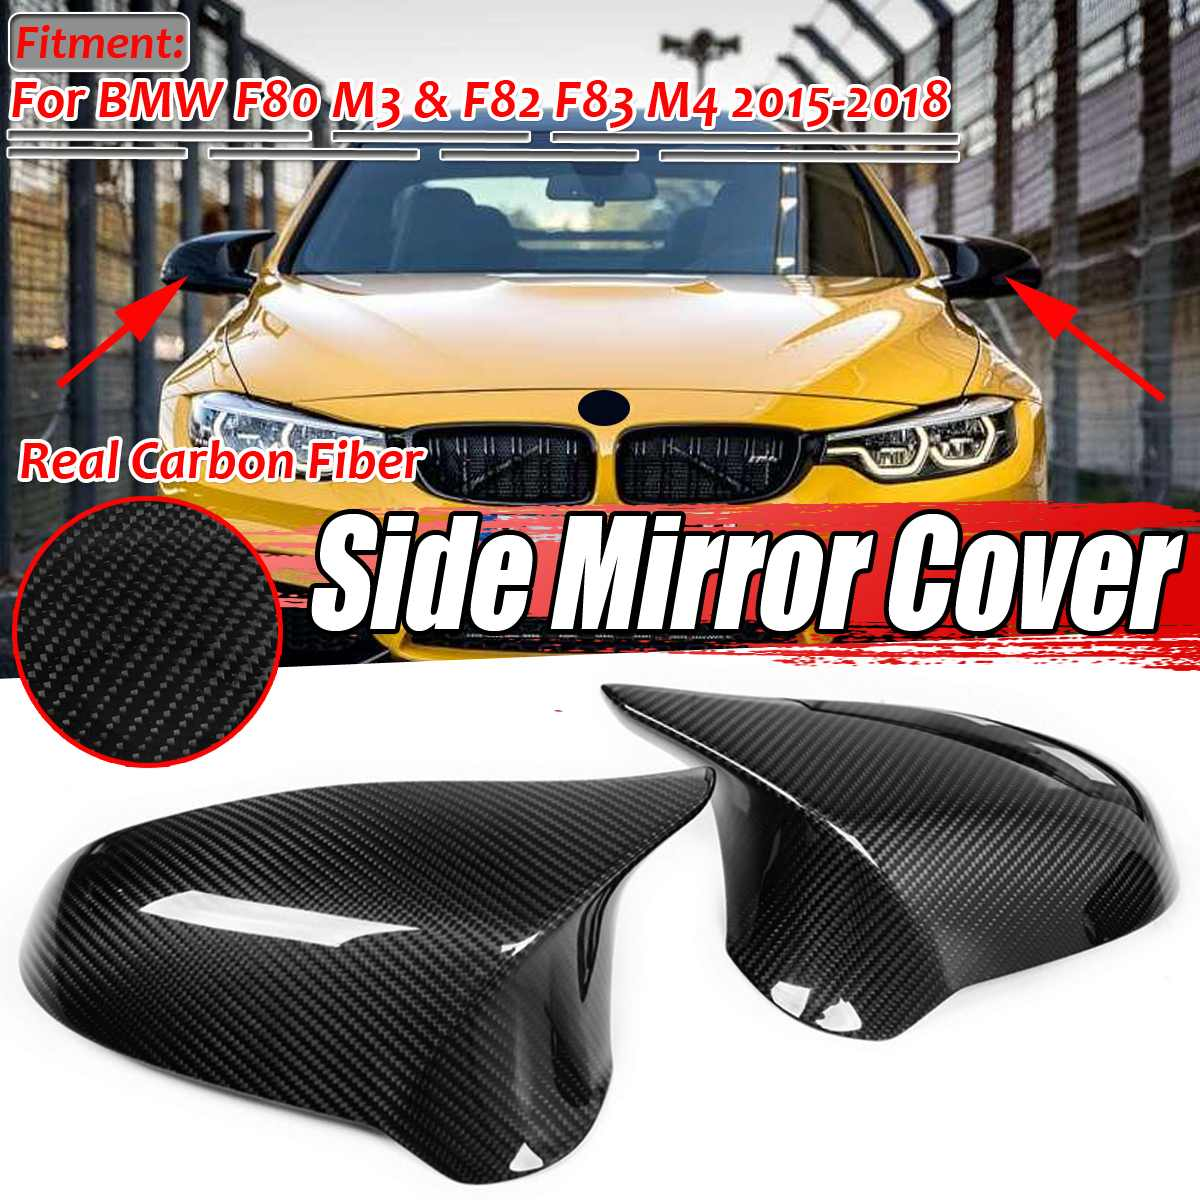 Real Carbon Fiber Car Door Side Mirror Cover Add On For BMW M3 M4 F80 F82 15-18